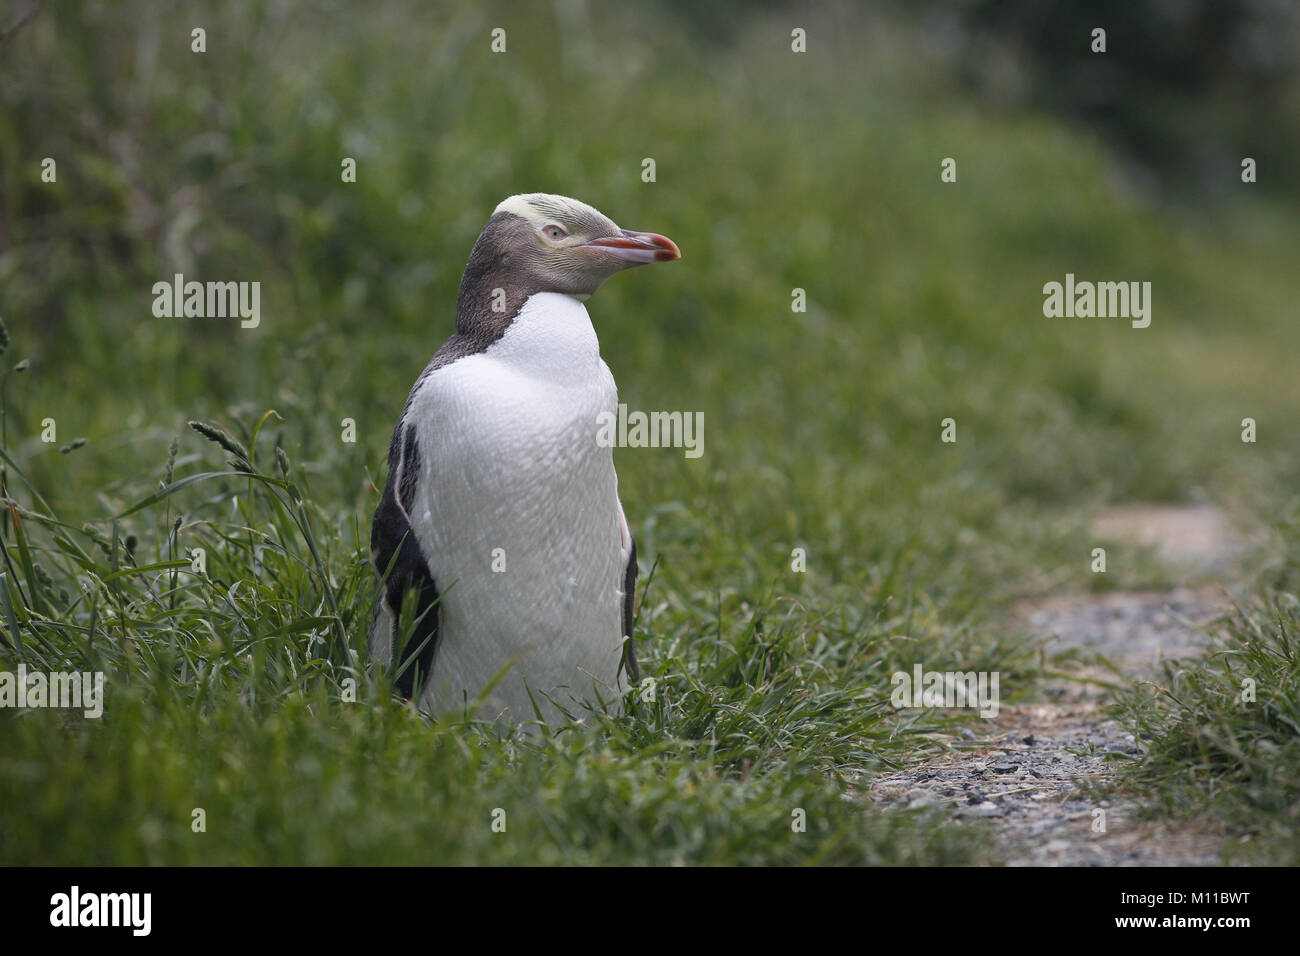 Yellow-eyed Penguin, Megadyptes antipodes Photo Stock